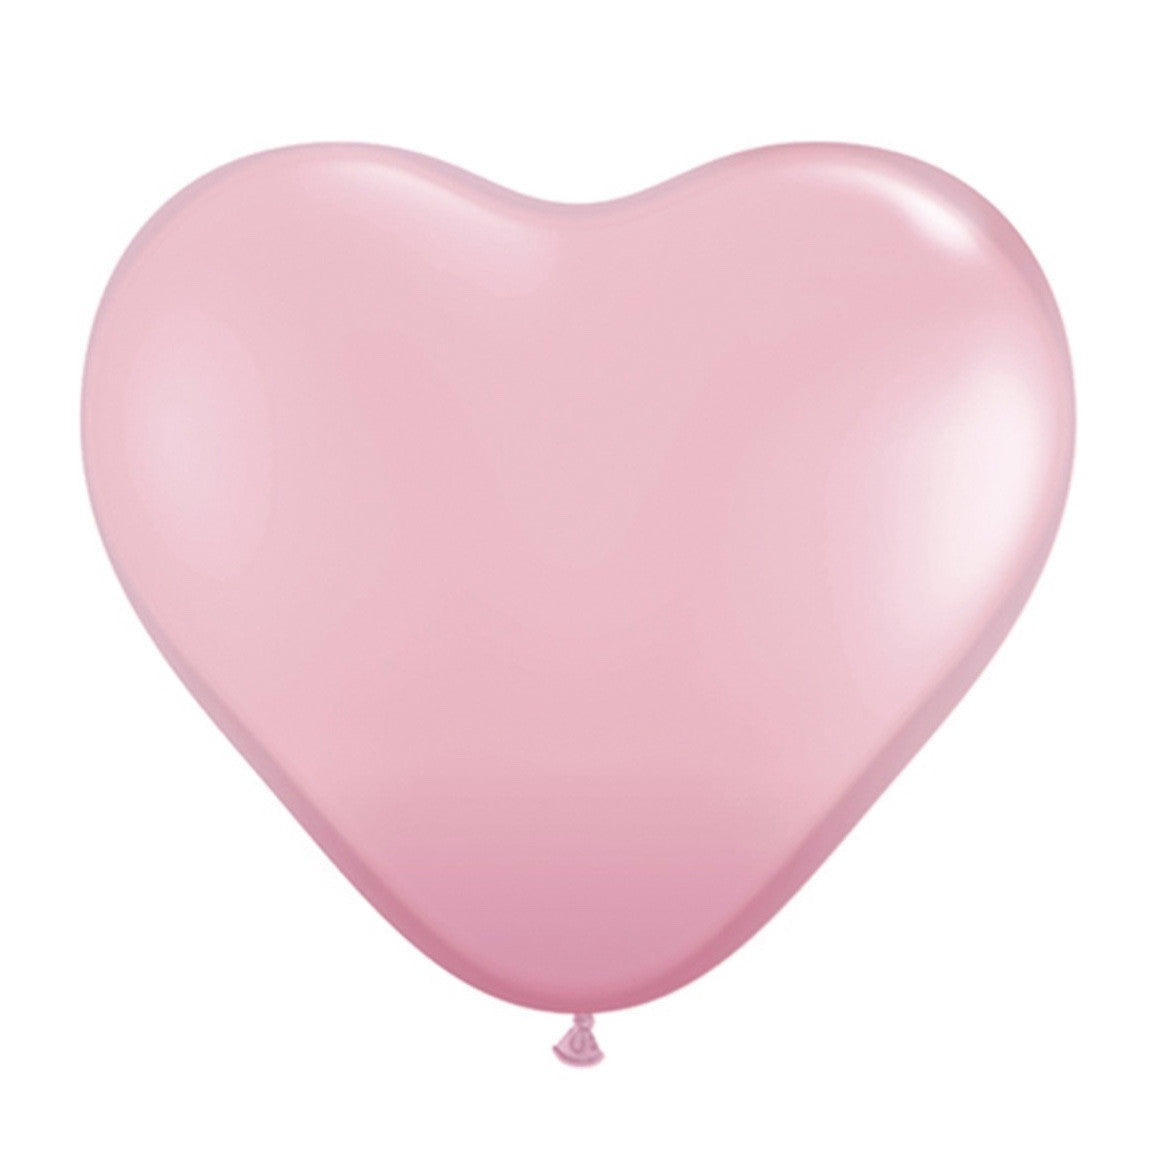 "Pearlized Heart Balloons - Pink 15"", SE-Surprize Enterprize, Putti Fine Furnishings"